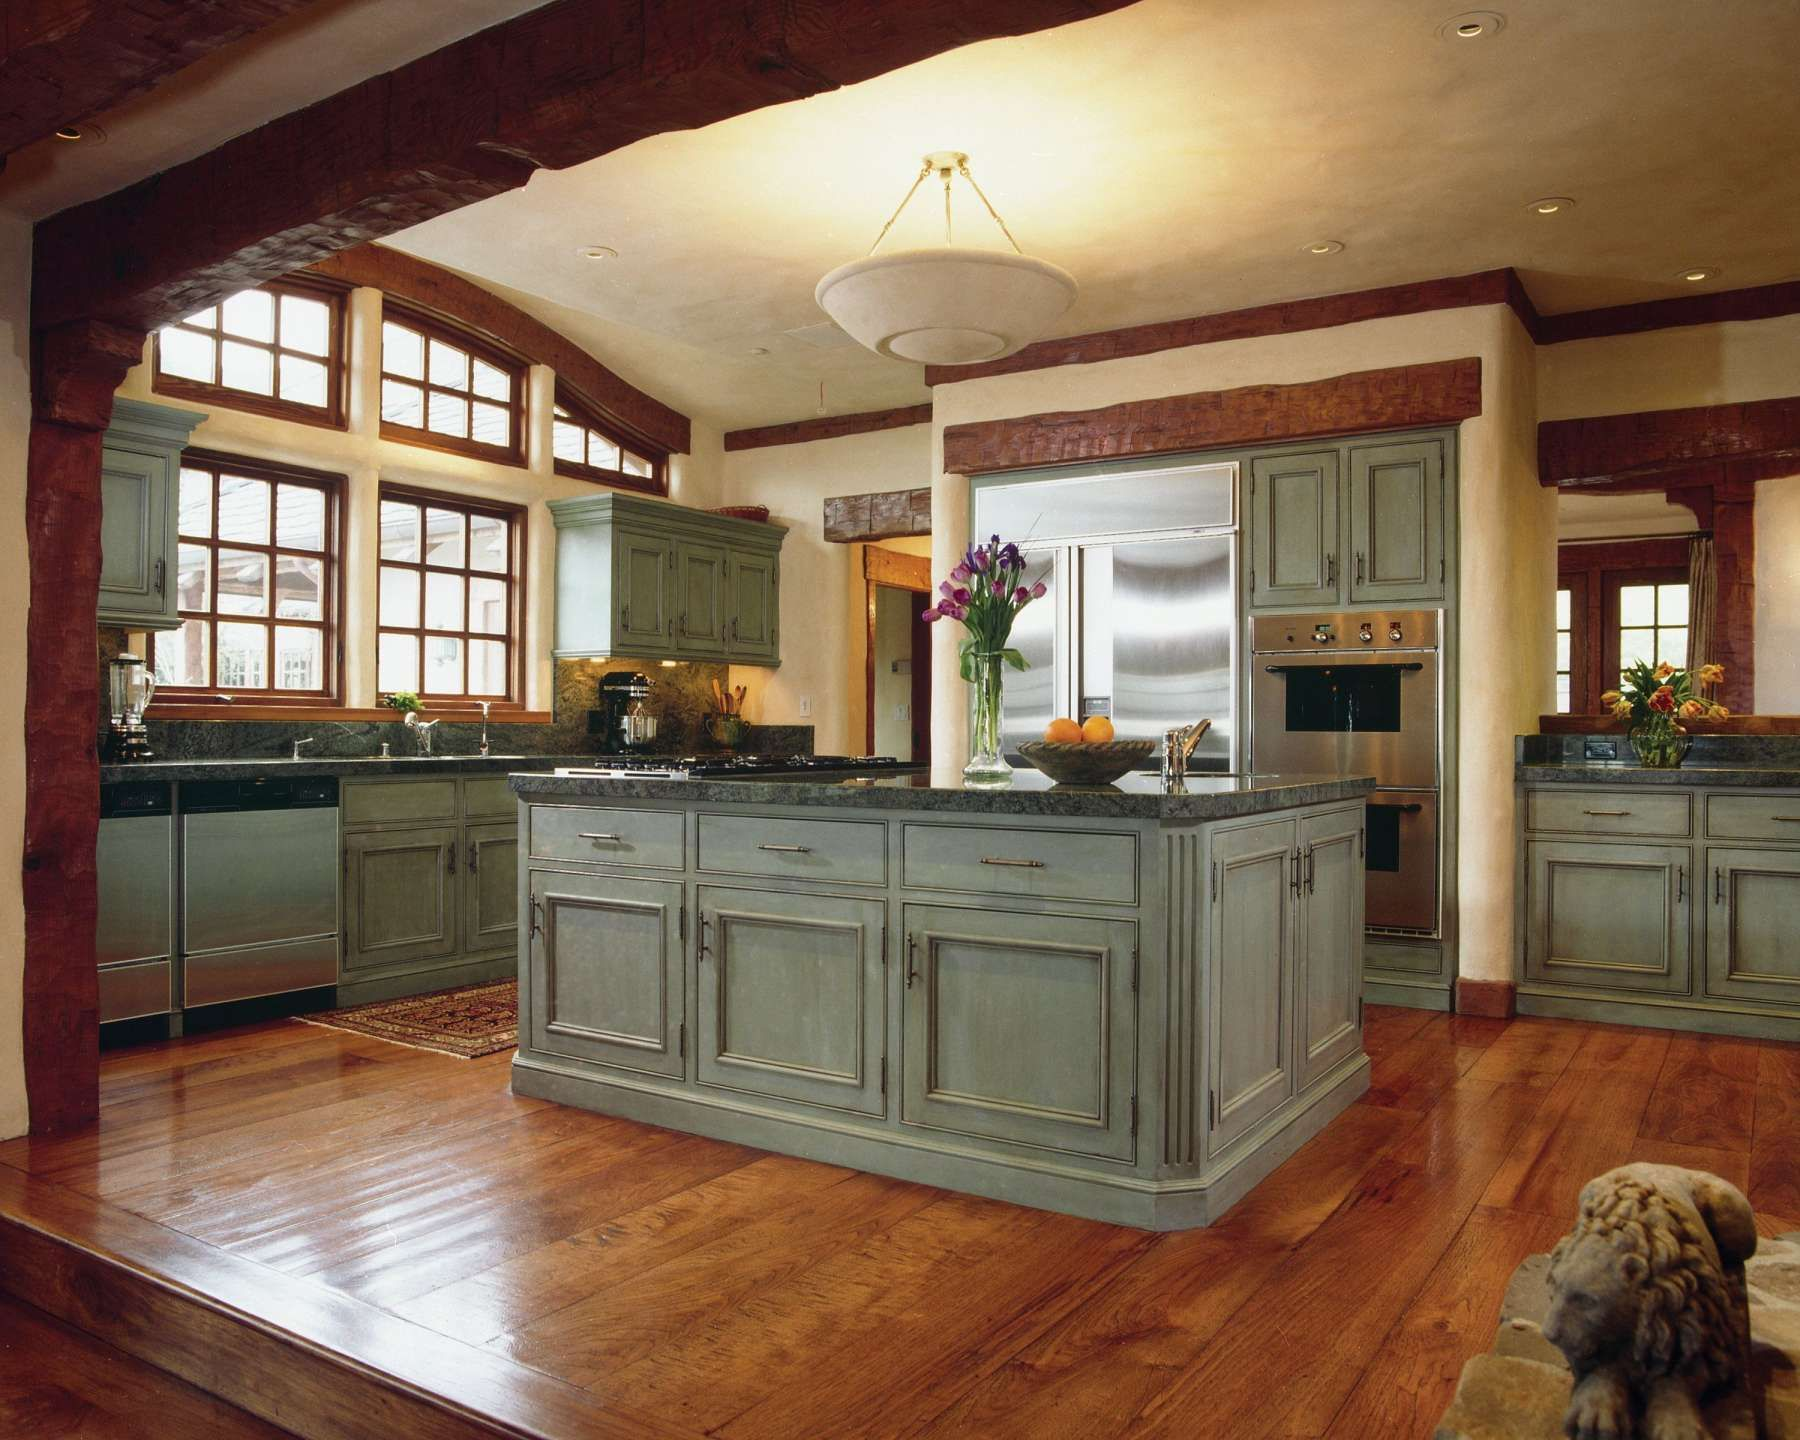 9 Unique Distressed Wood Kitchen Cabinets Gallery Wooden Furniture Woodplans101 Com In 2020 Distressed Kitchen Cabinets Distressed Kitchen Rustic Kitchen